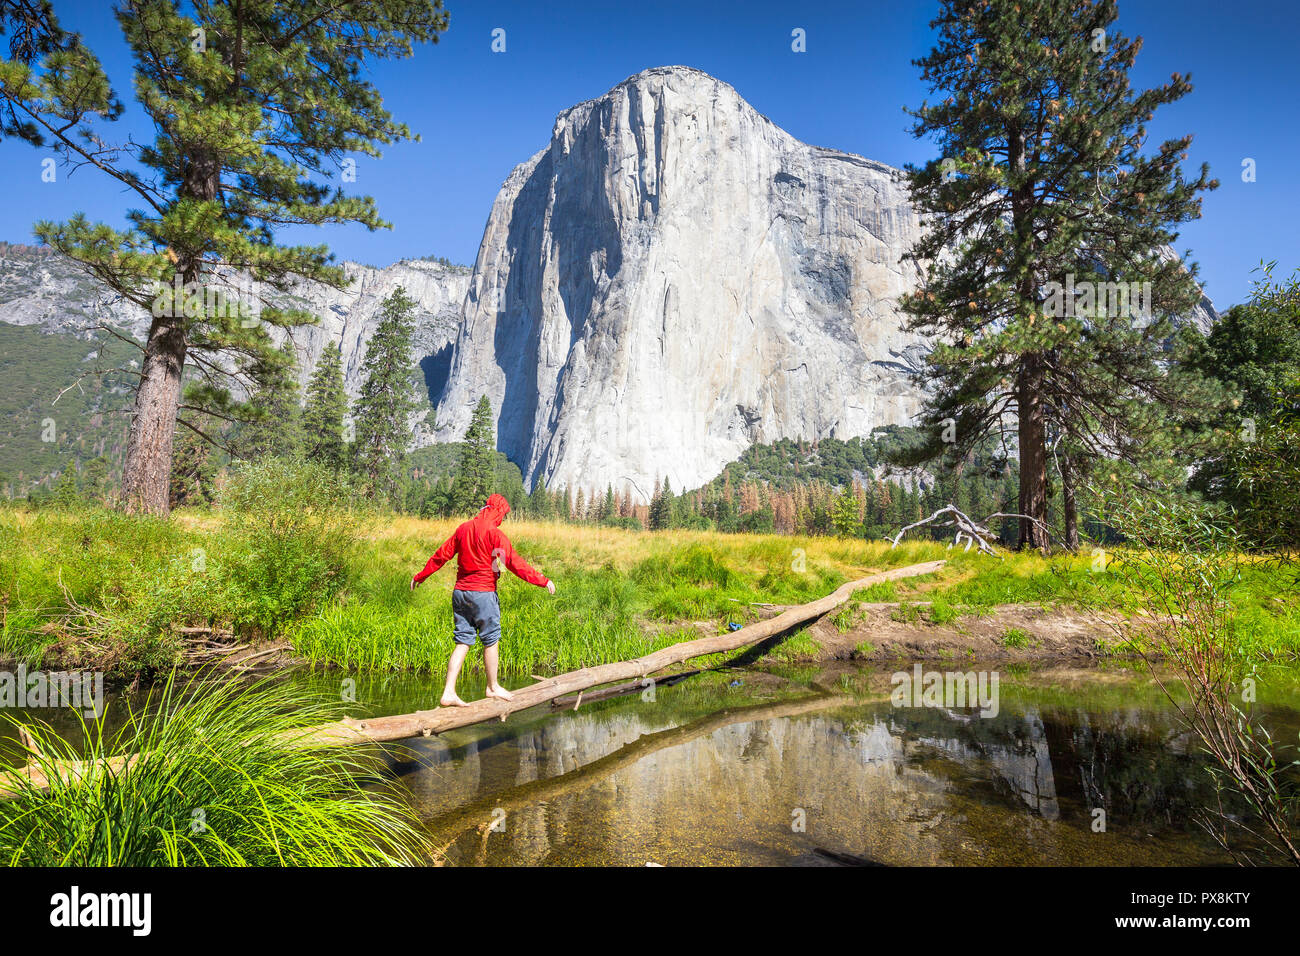 A hiker is balancing on a fallen tree over a tributary of Merced river in front of famous El Capitan rock climbing summit in scenic Yosemite Valley - Stock Image